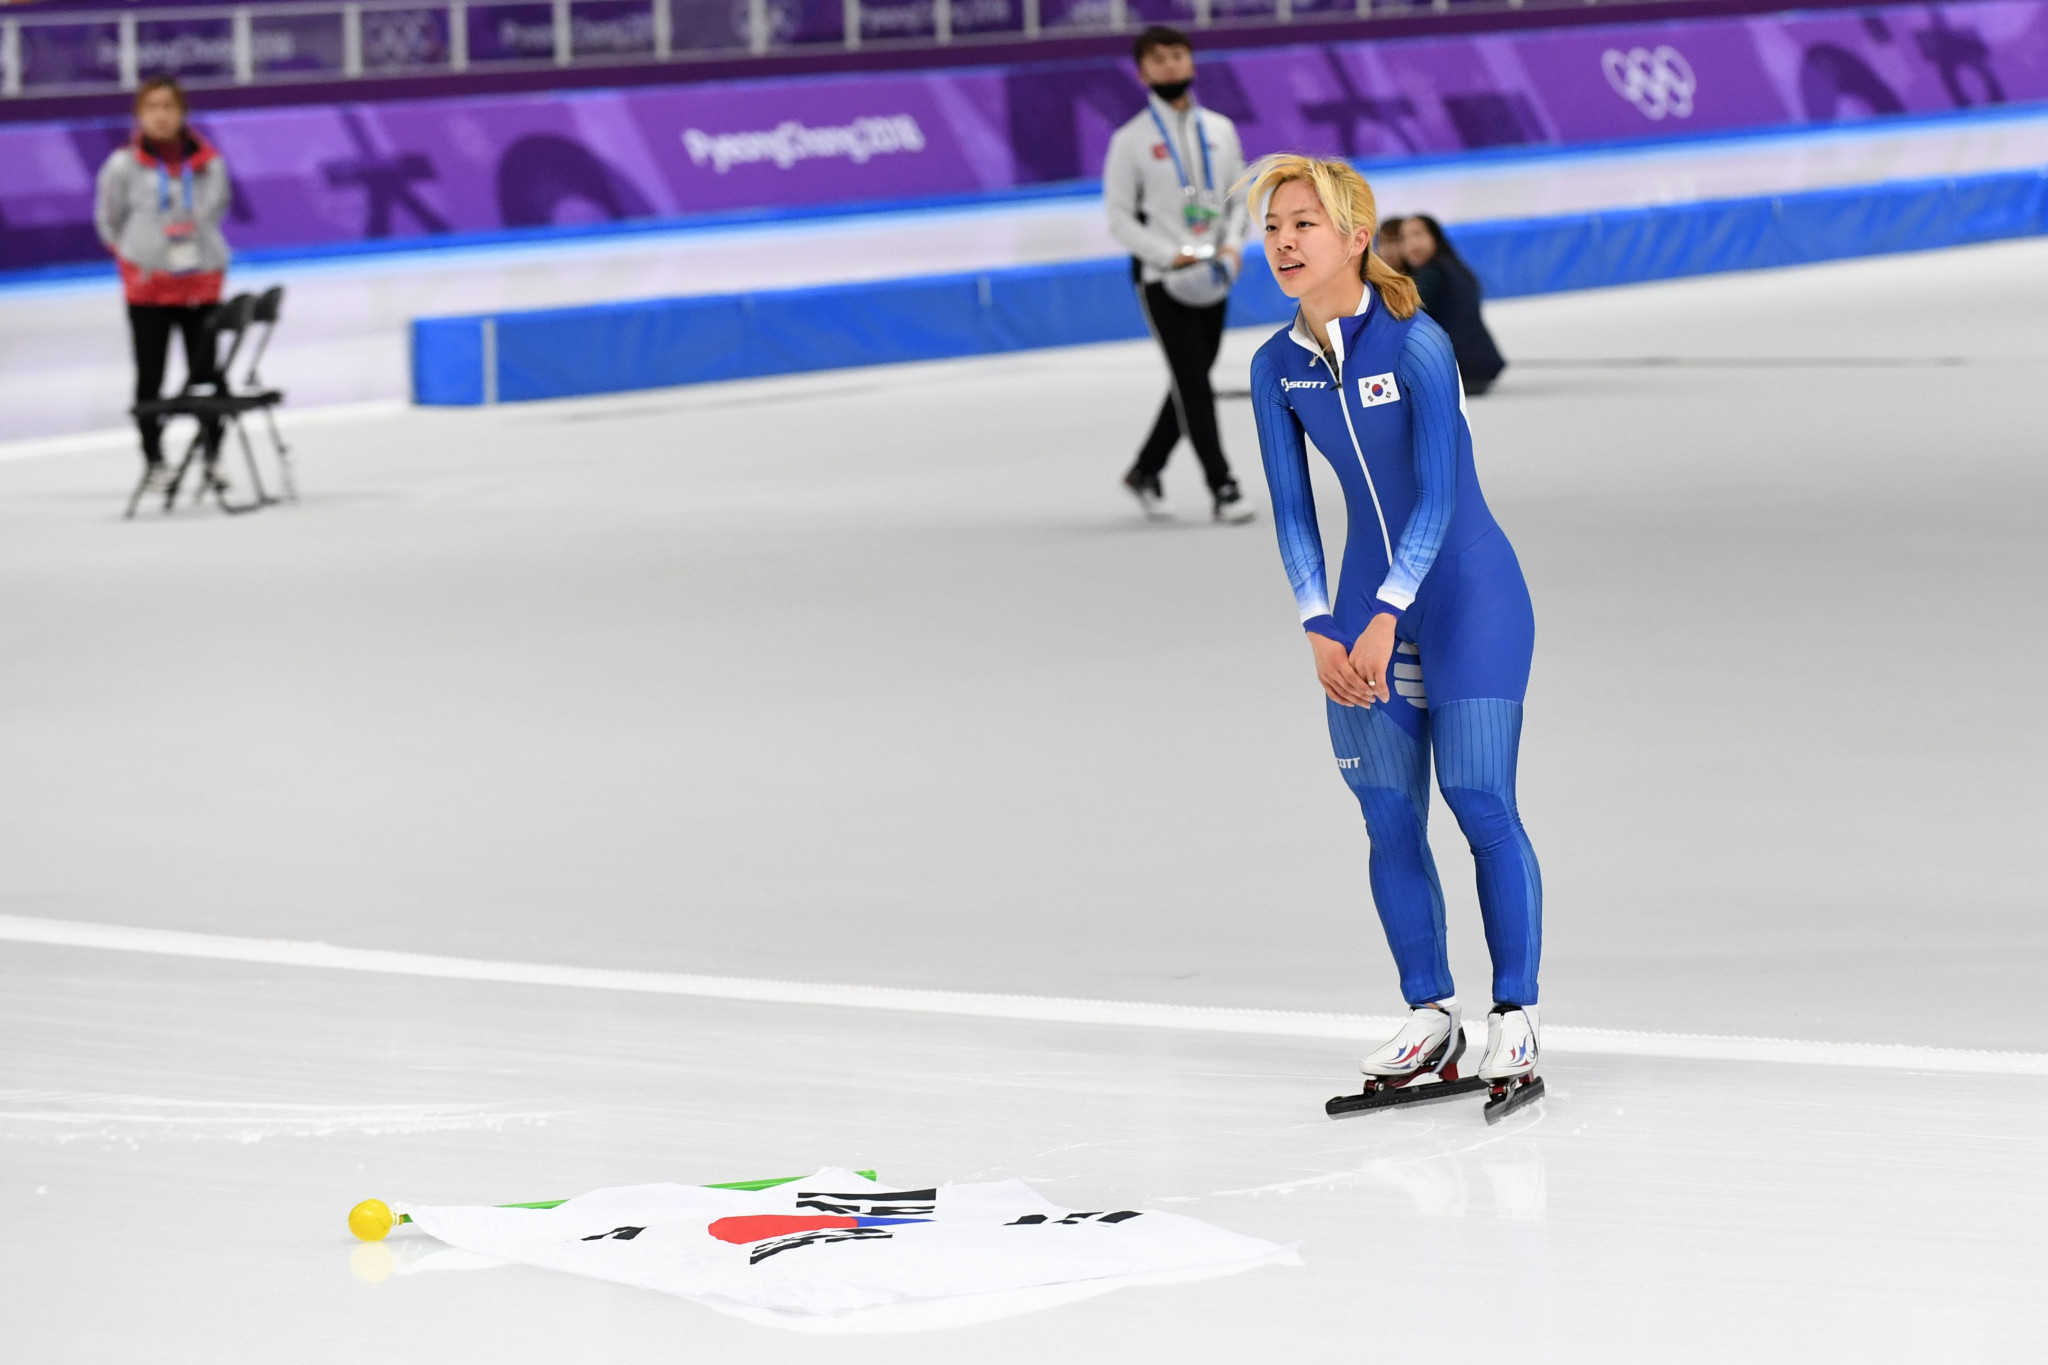 South Korea's Kim Bo-reum went on to win an Olympic silver medal in the mass start following the allegations of bullying made against her and team-mate Park Ji-woo 